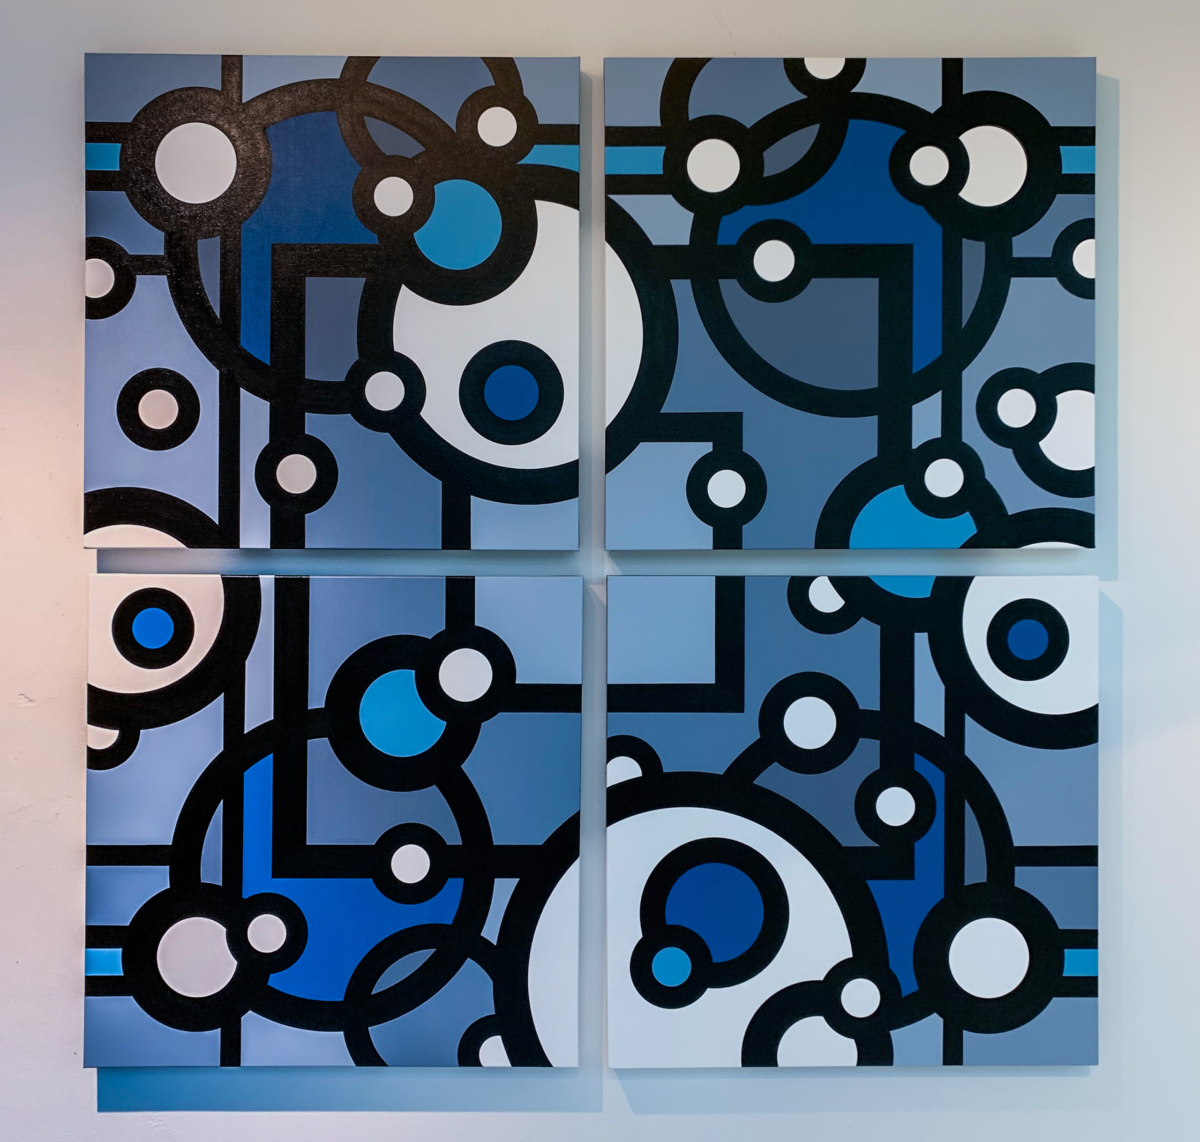 An abstract painting split into quadrants. Circles and squares overlap showing different shades of blue.